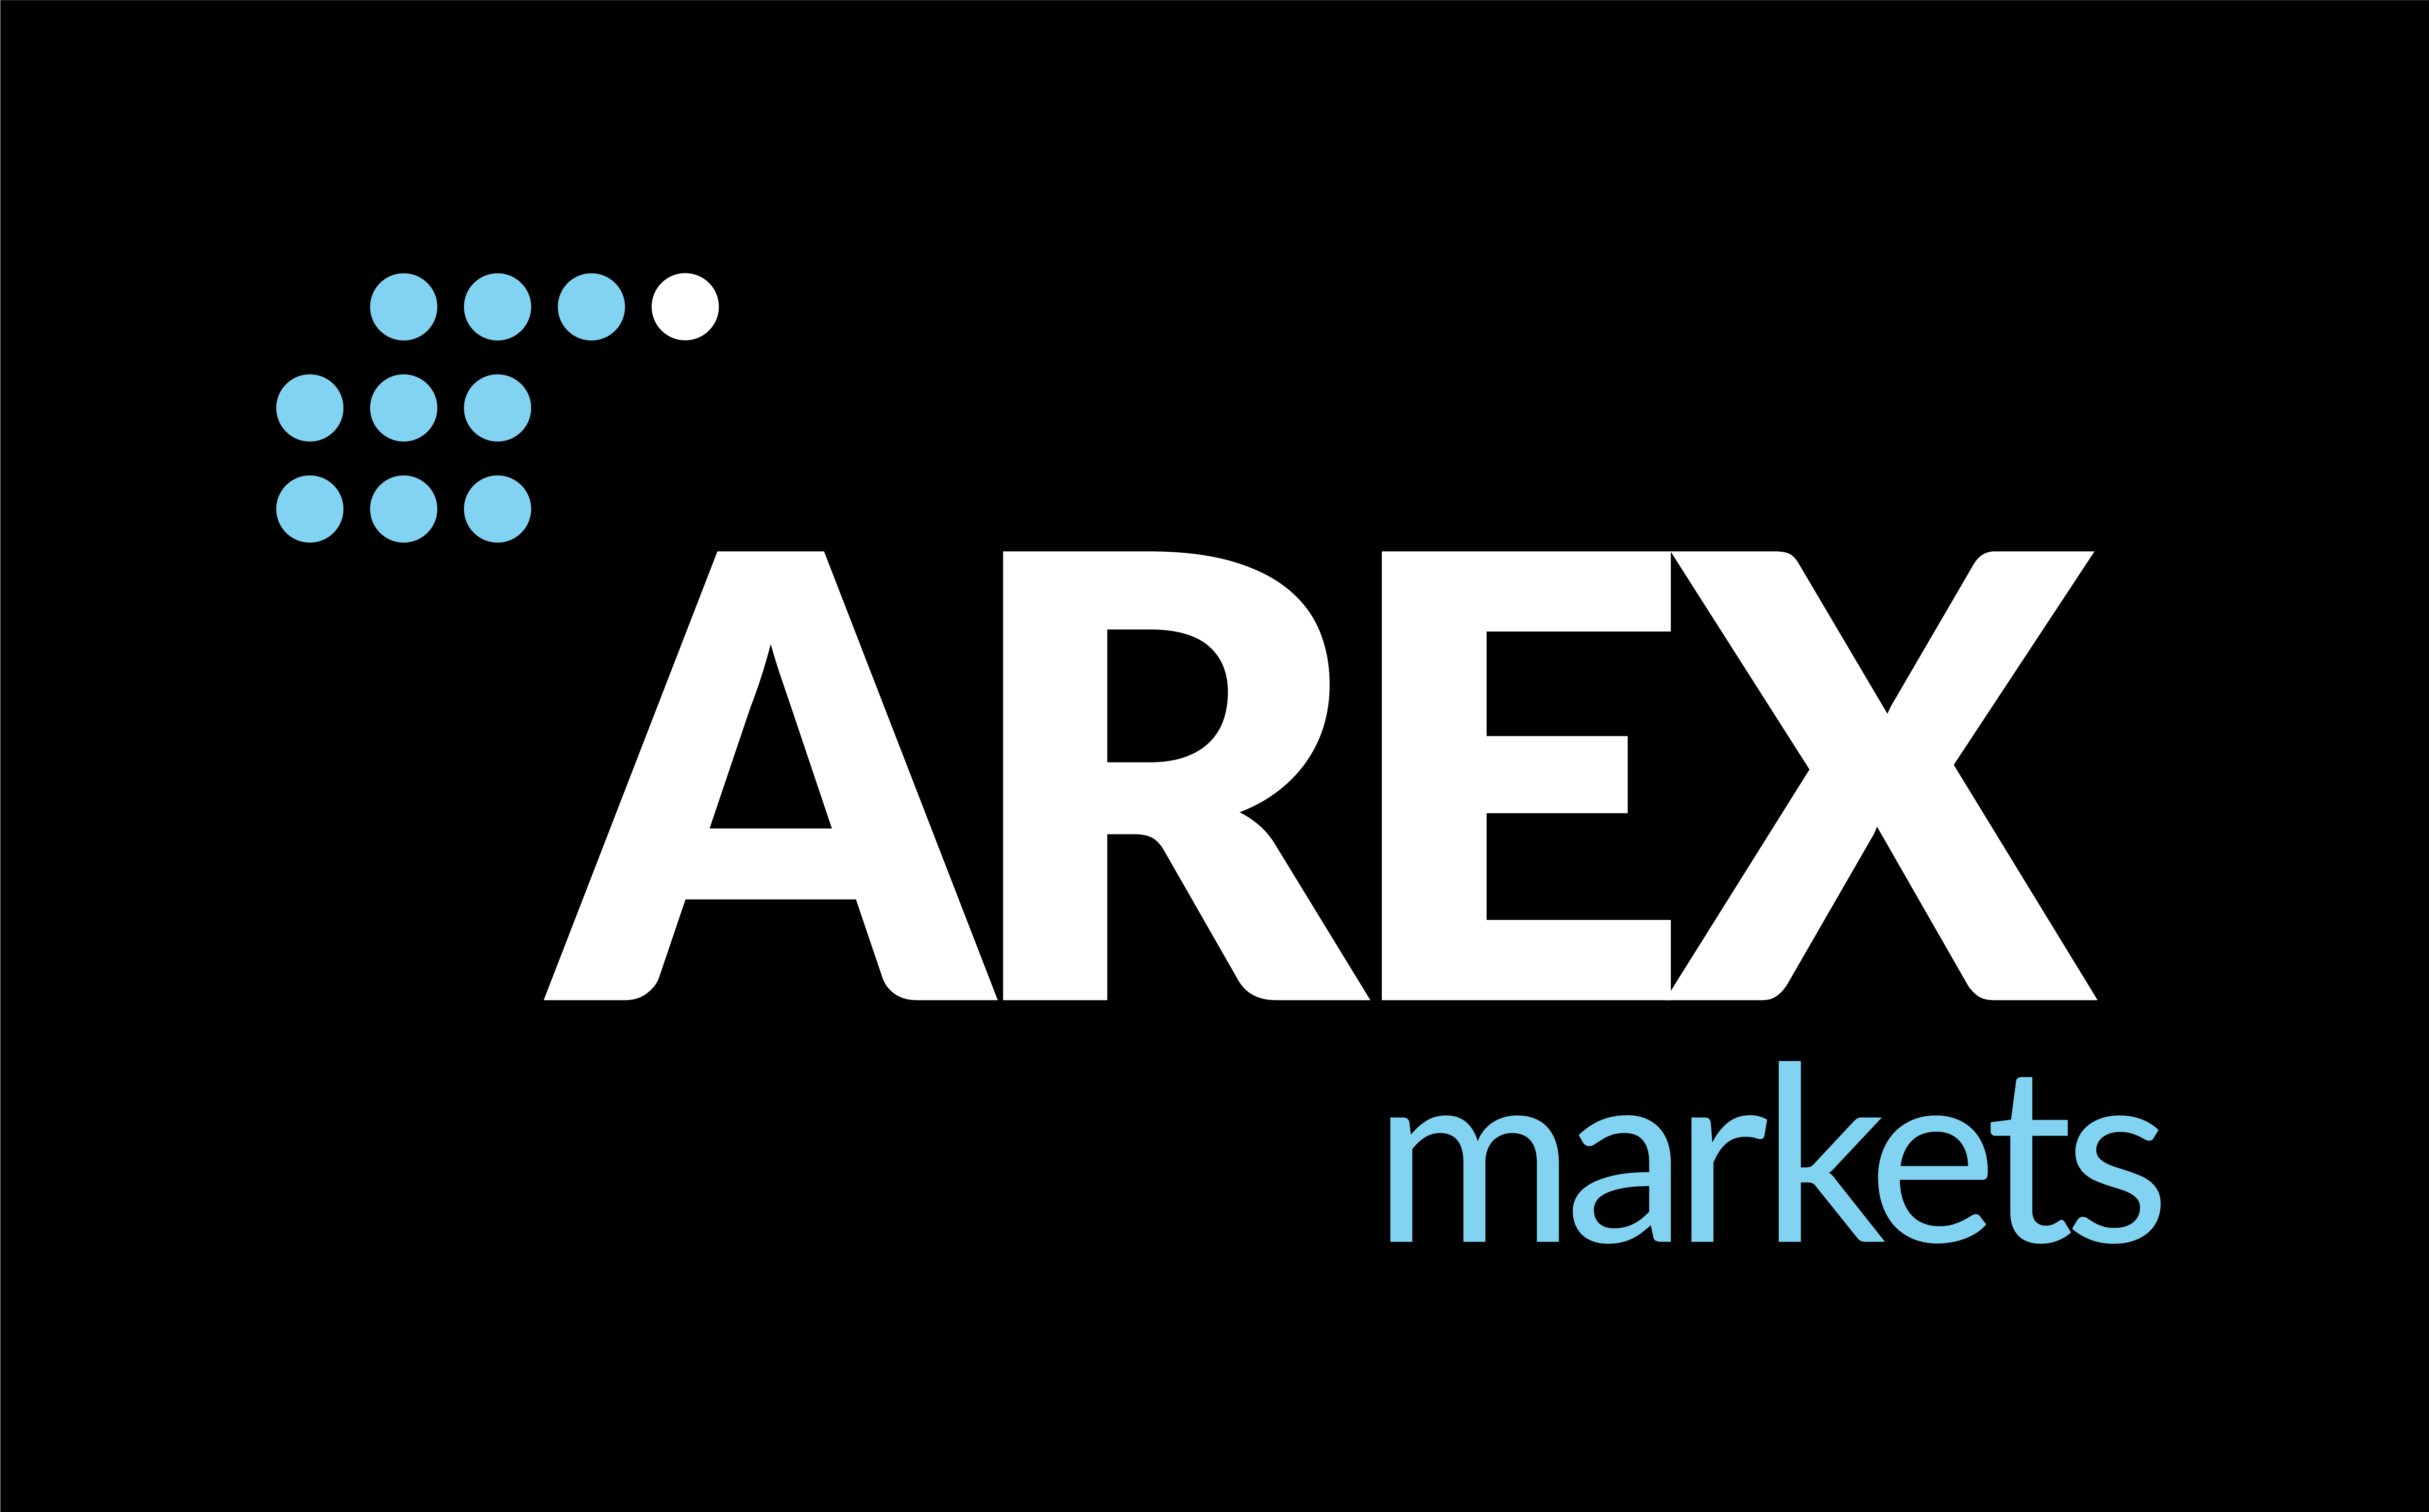 Invoice finance leader AREX Markets raises EUR 8.8 million in Series A funding